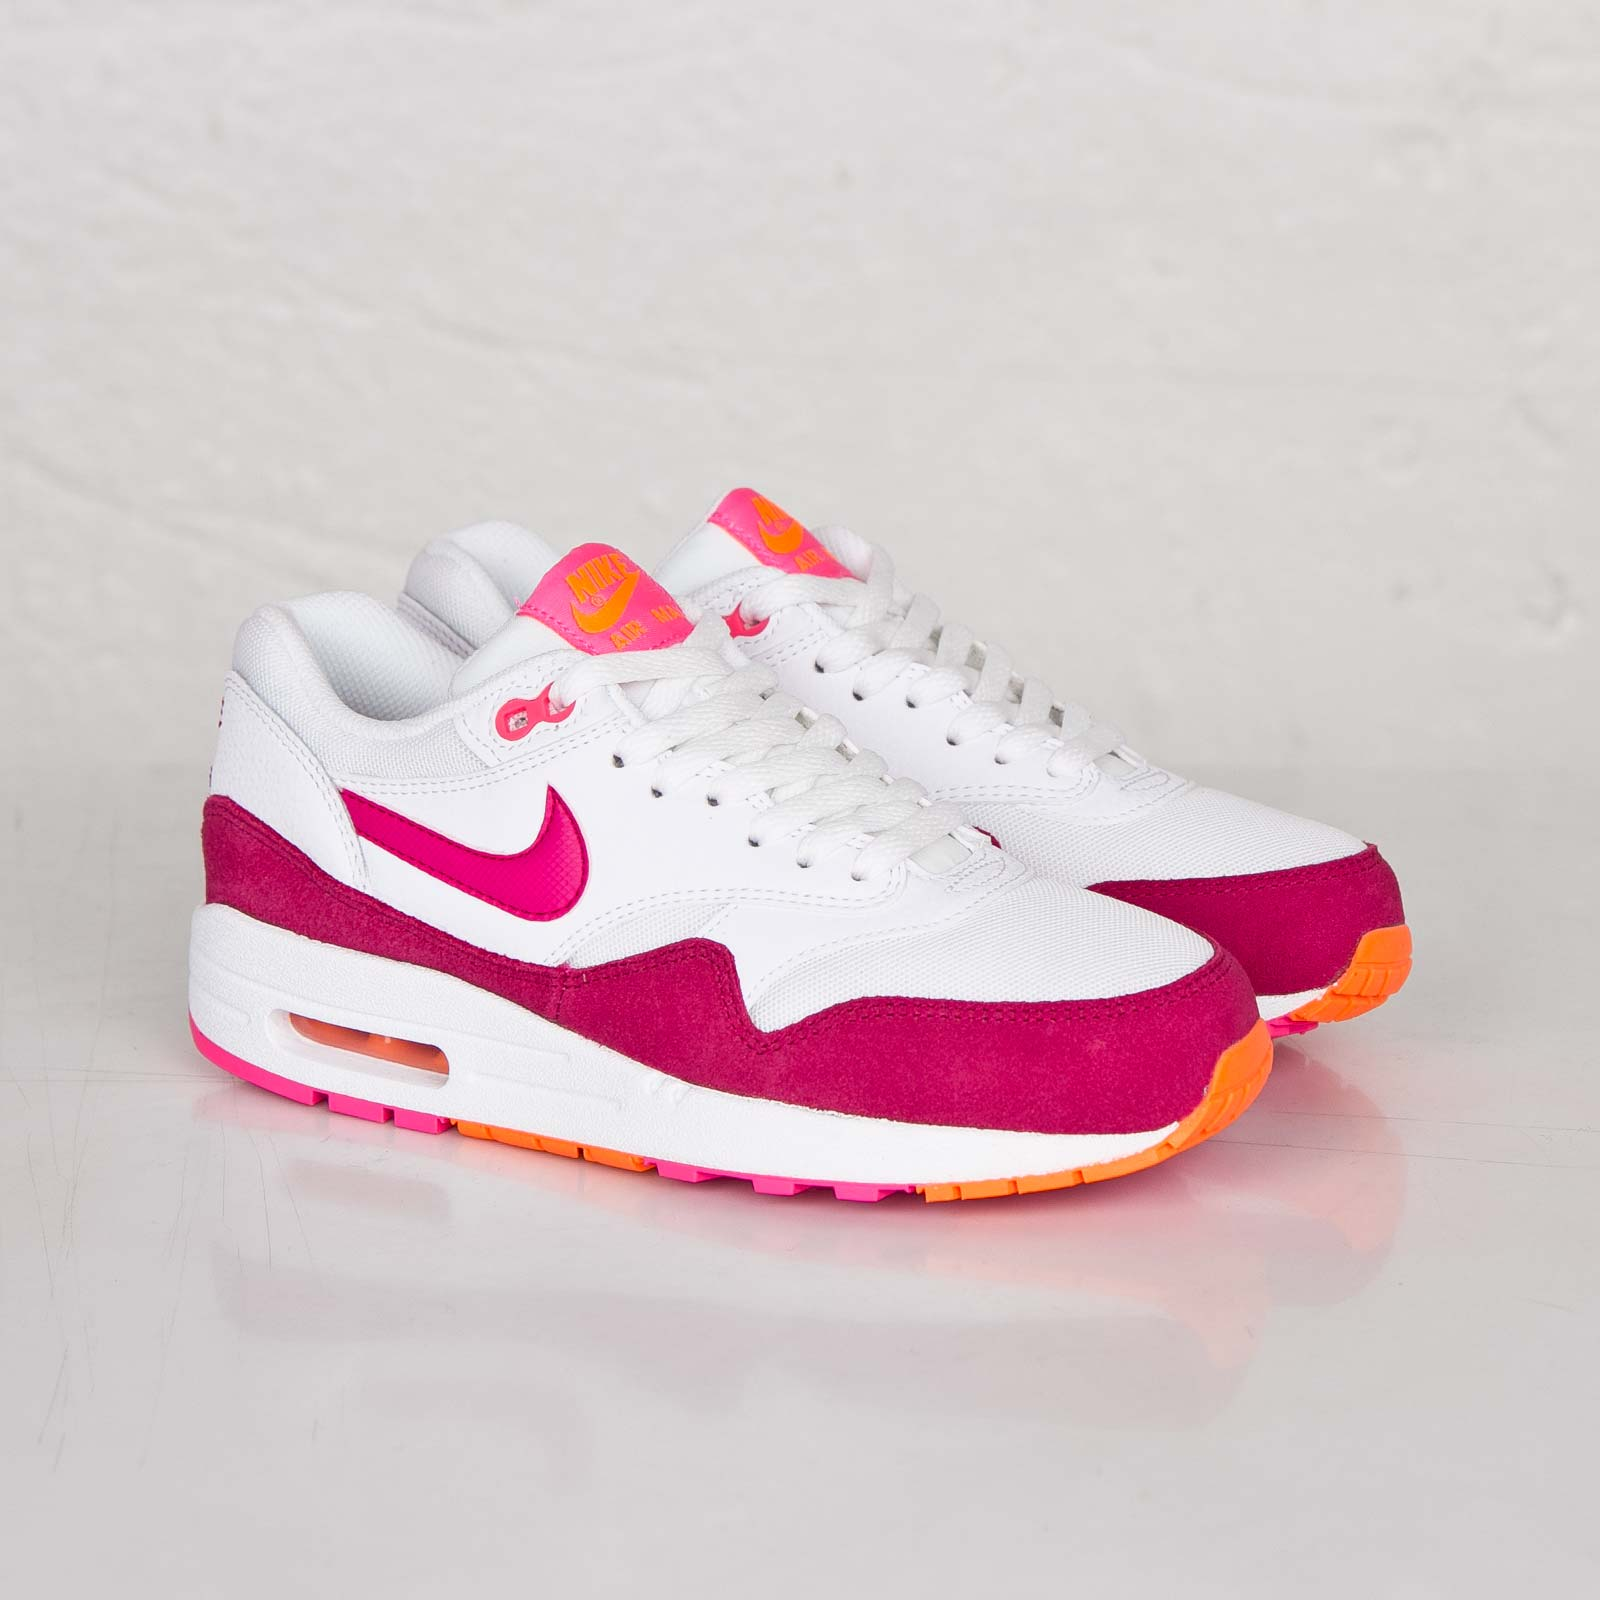 egiziano annerire Nathaniel Ward  Nike Wmns Air Max 1 Essential - 599820-112 - Sneakersnstuff | sneakers &  streetwear online since 1999